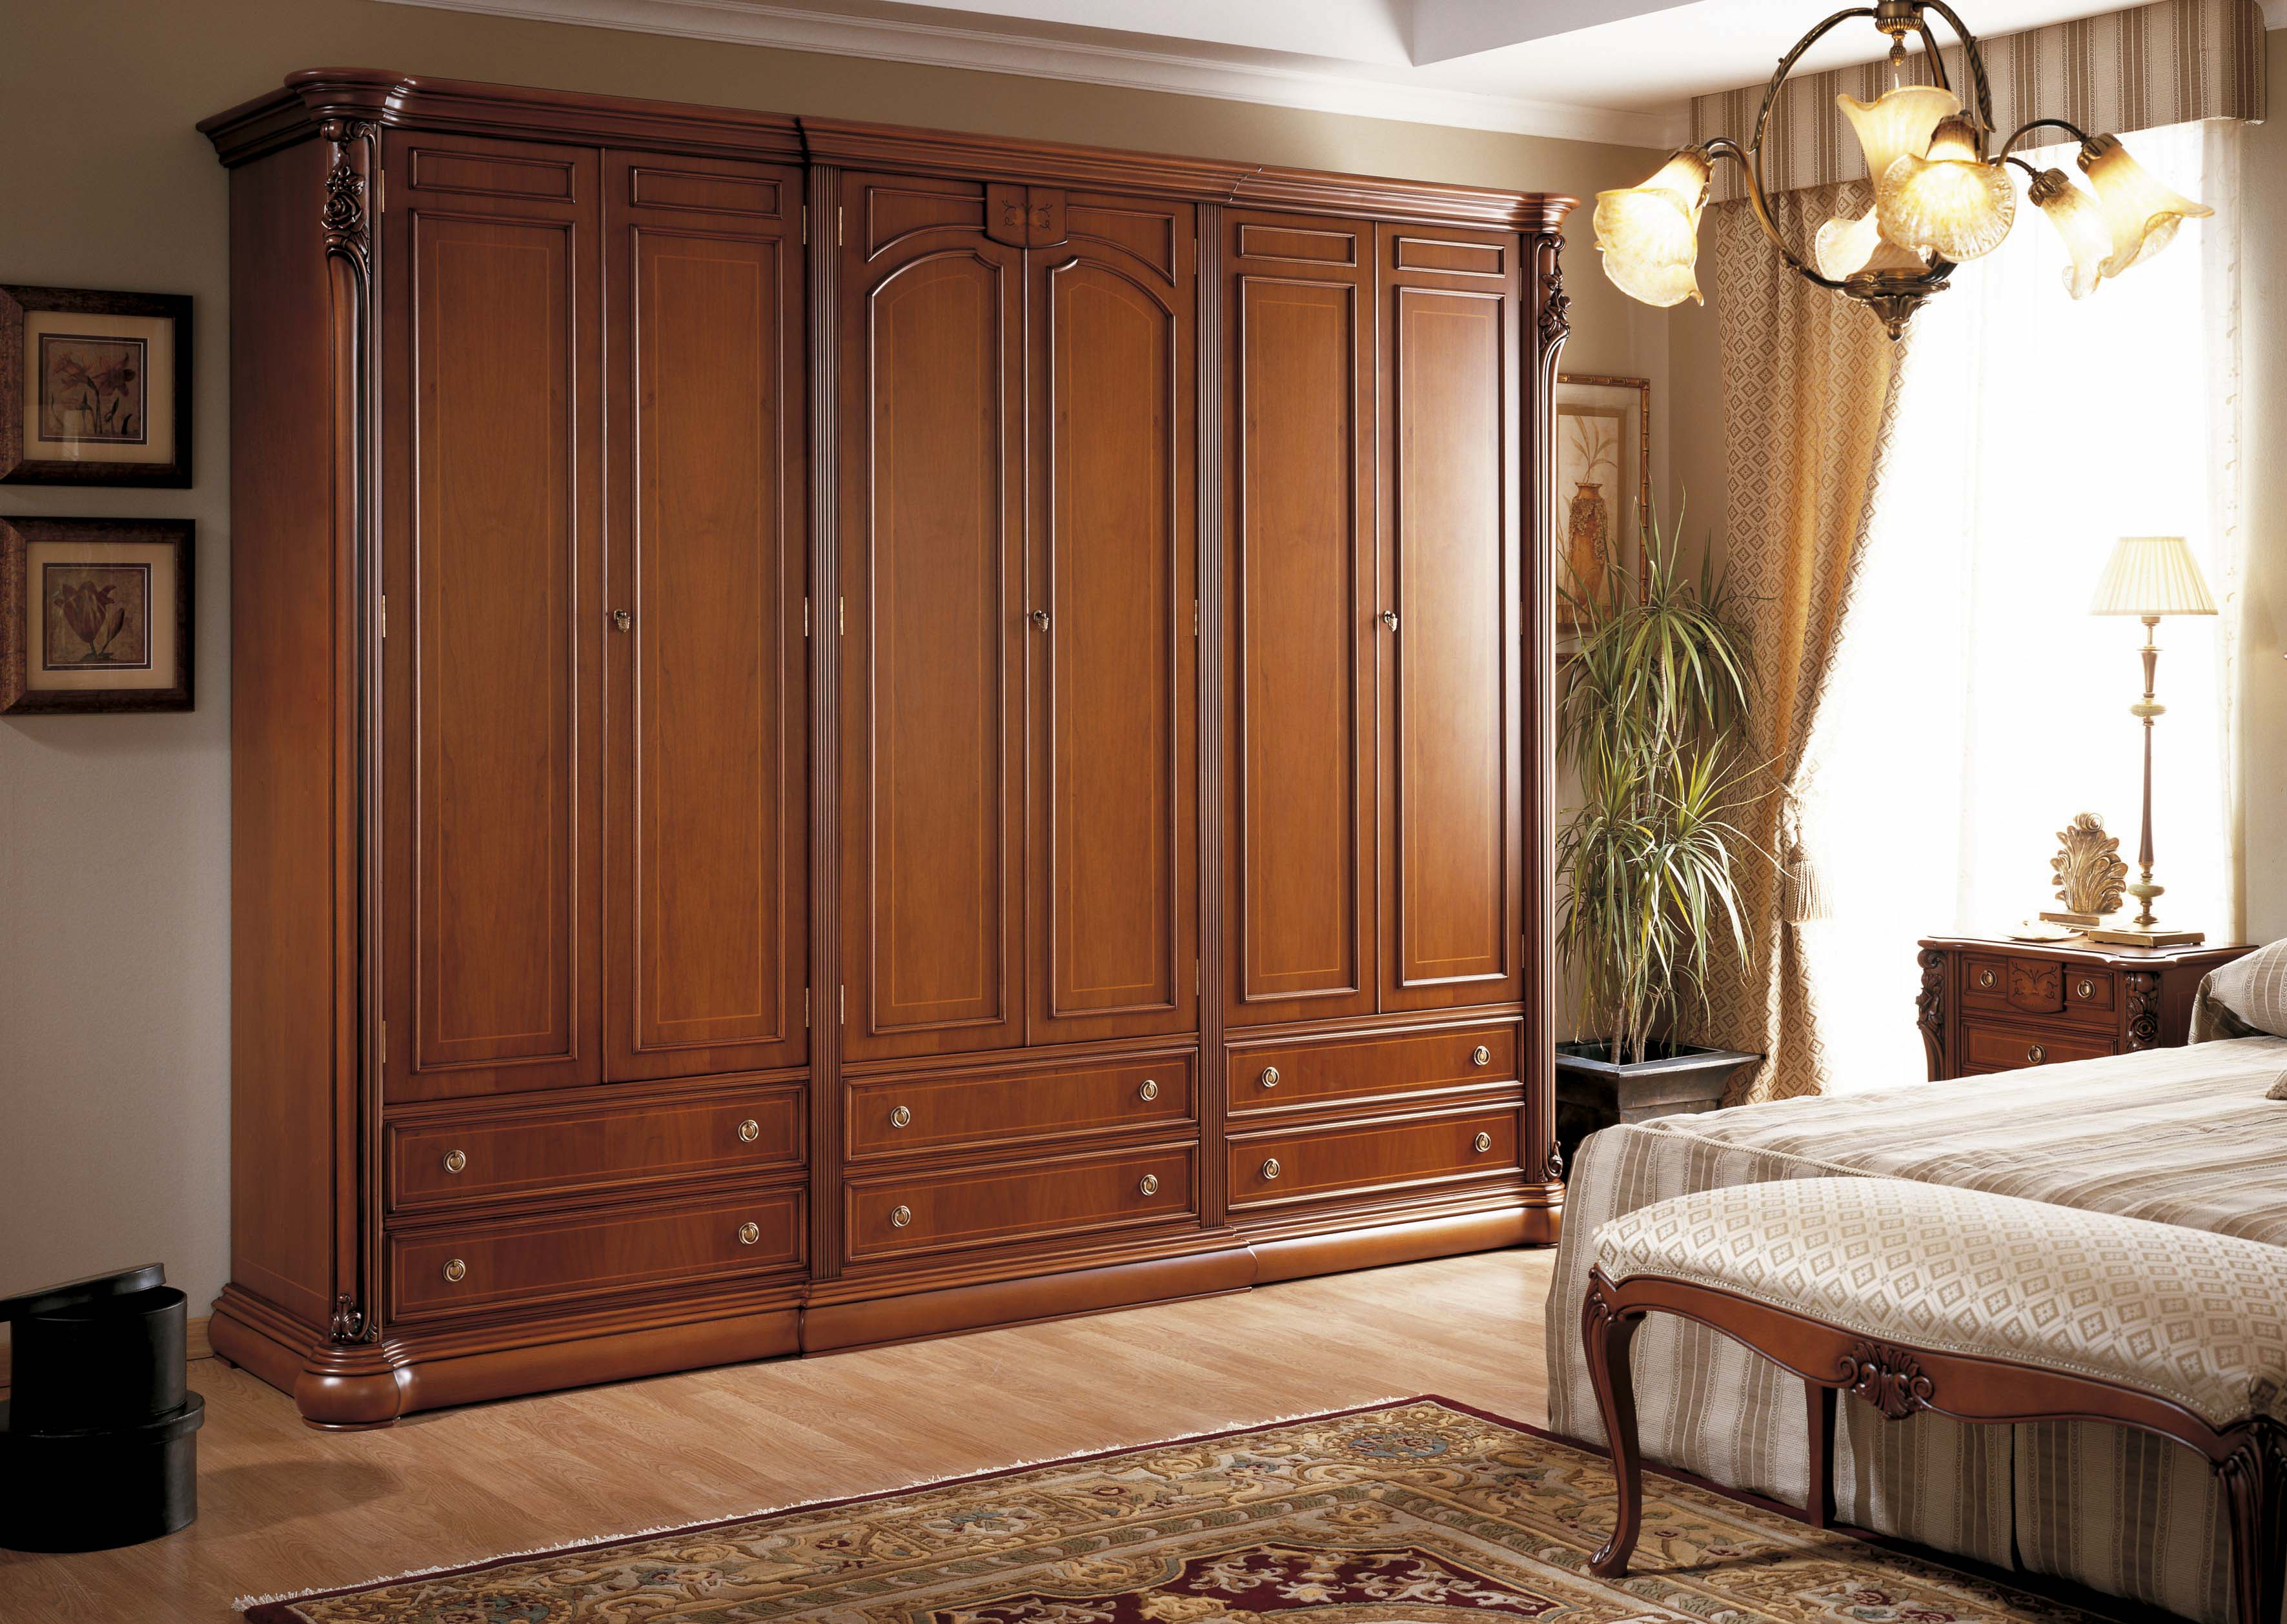 7 499 129 45 57 for Alpuch muebles